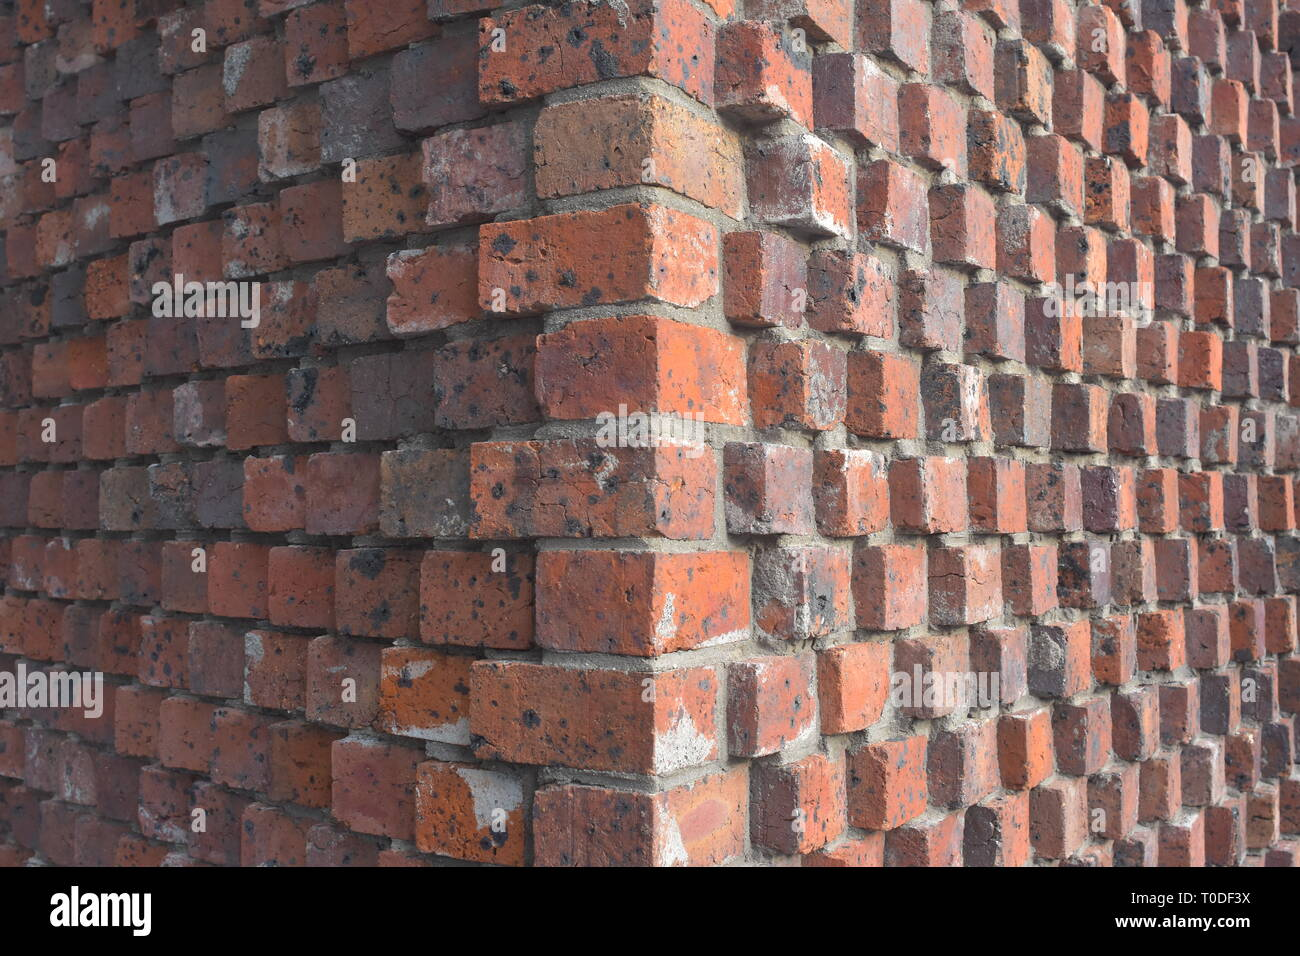 Corner detail of exterior wall of red bricks and mortar with bricks protruding form wall surface. - Stock Image